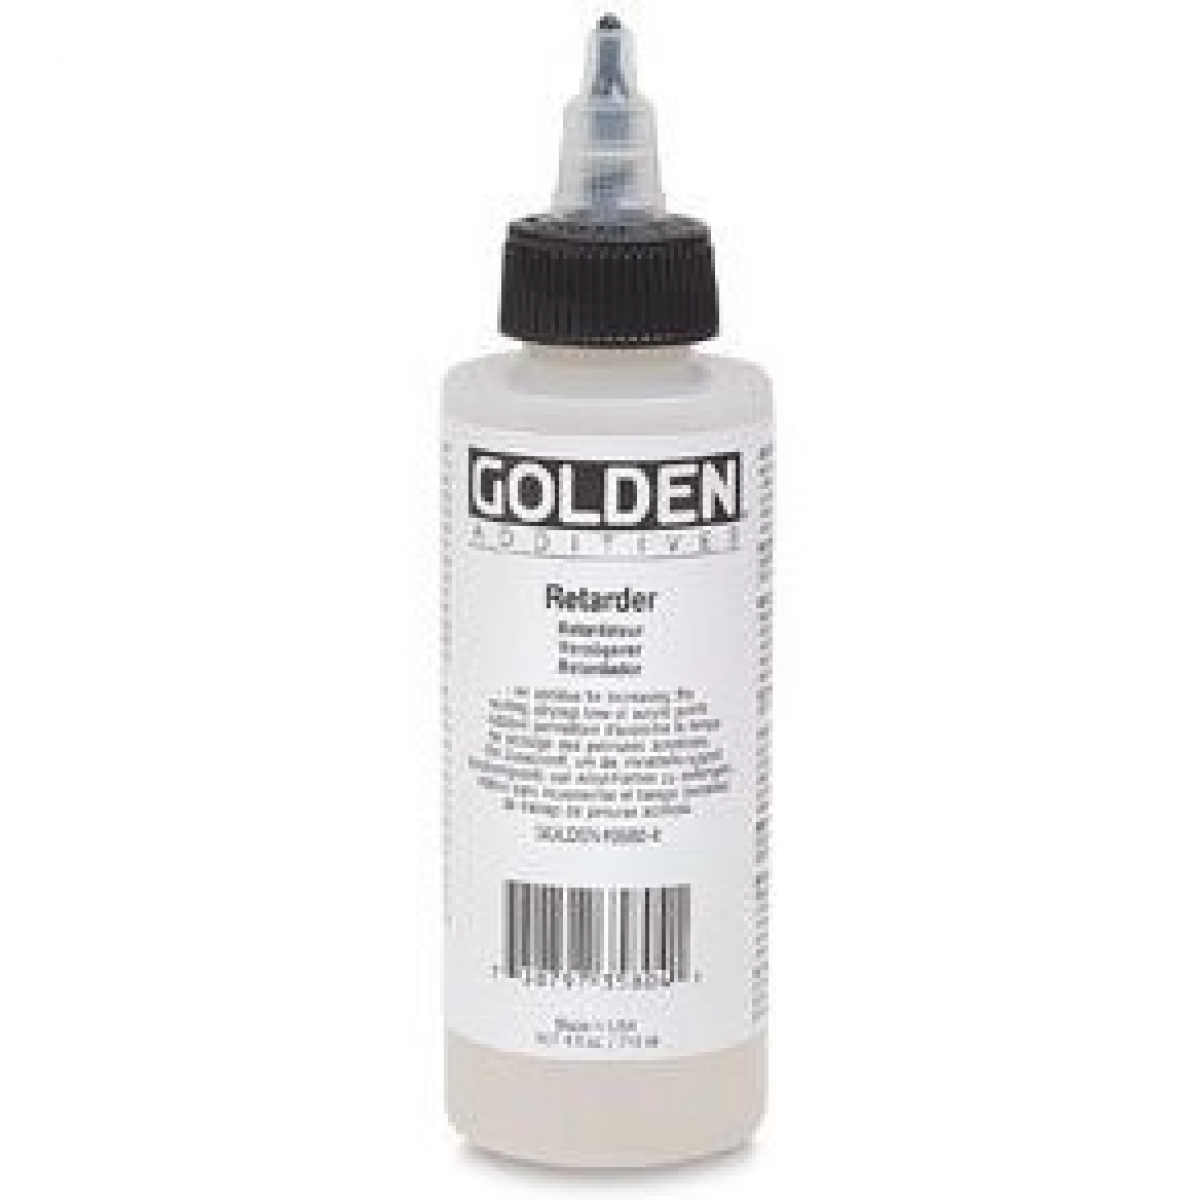 GOLDEN Retarder 118ml.